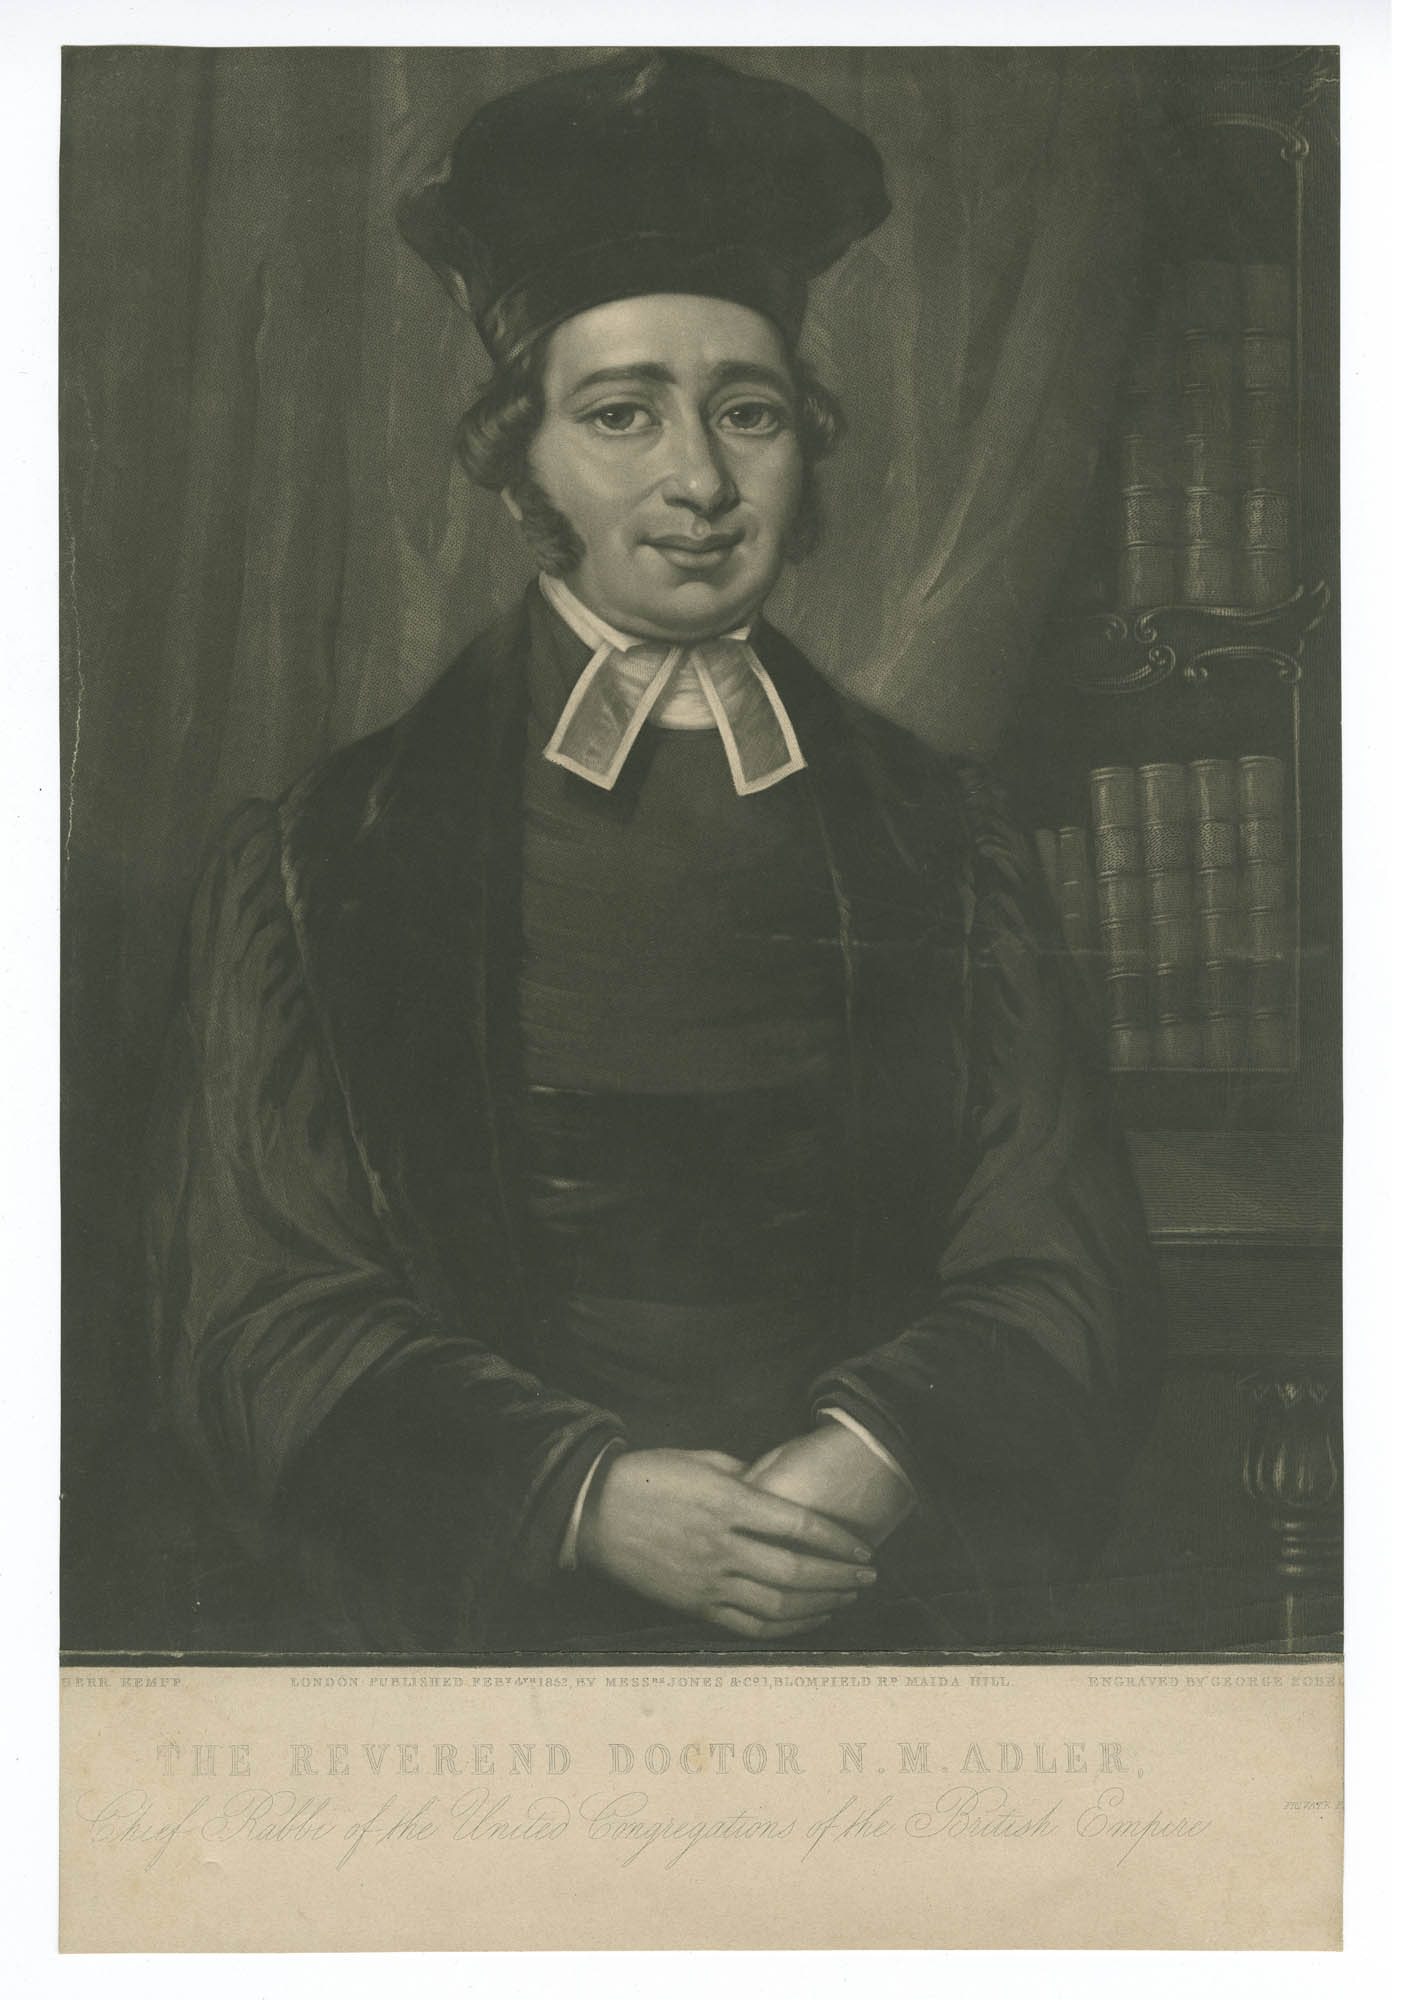 The Reverend Doctor N. M. Adler, Chief Rabbi of the United Congregations of the British Empire